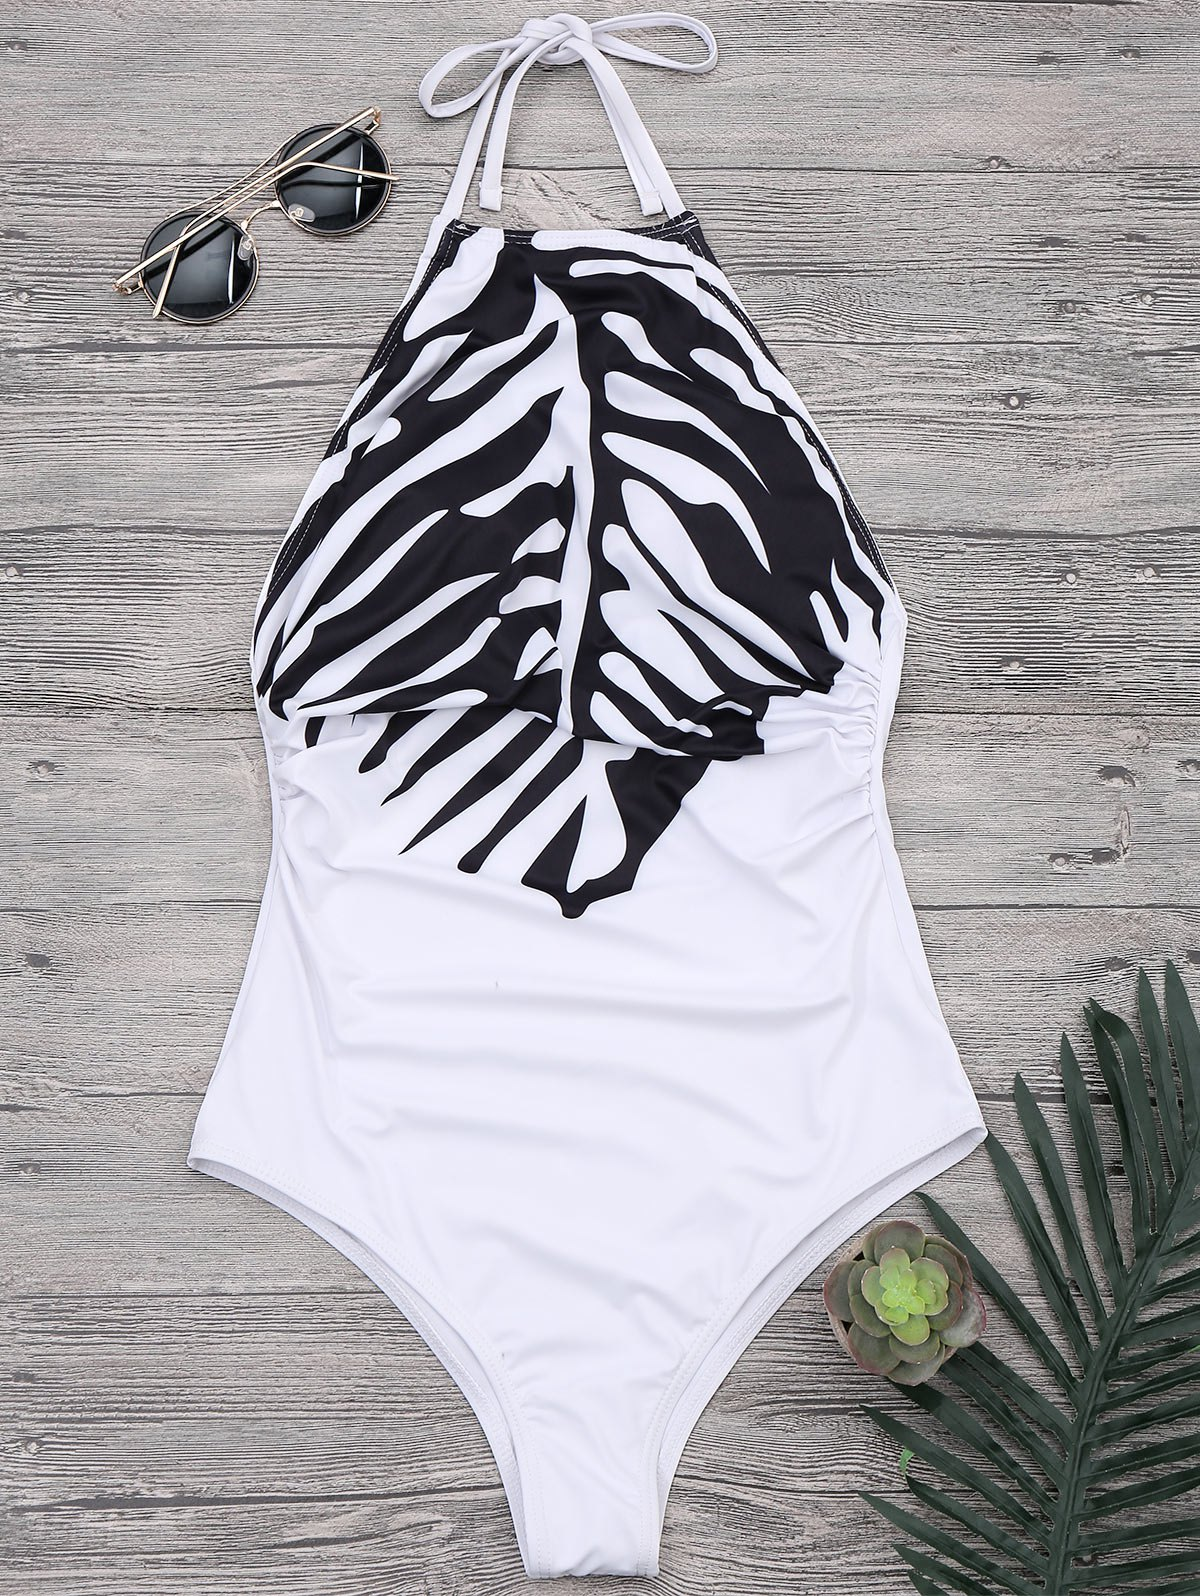 Ruched High Neck Halter One Piece Swimsuit 213436001